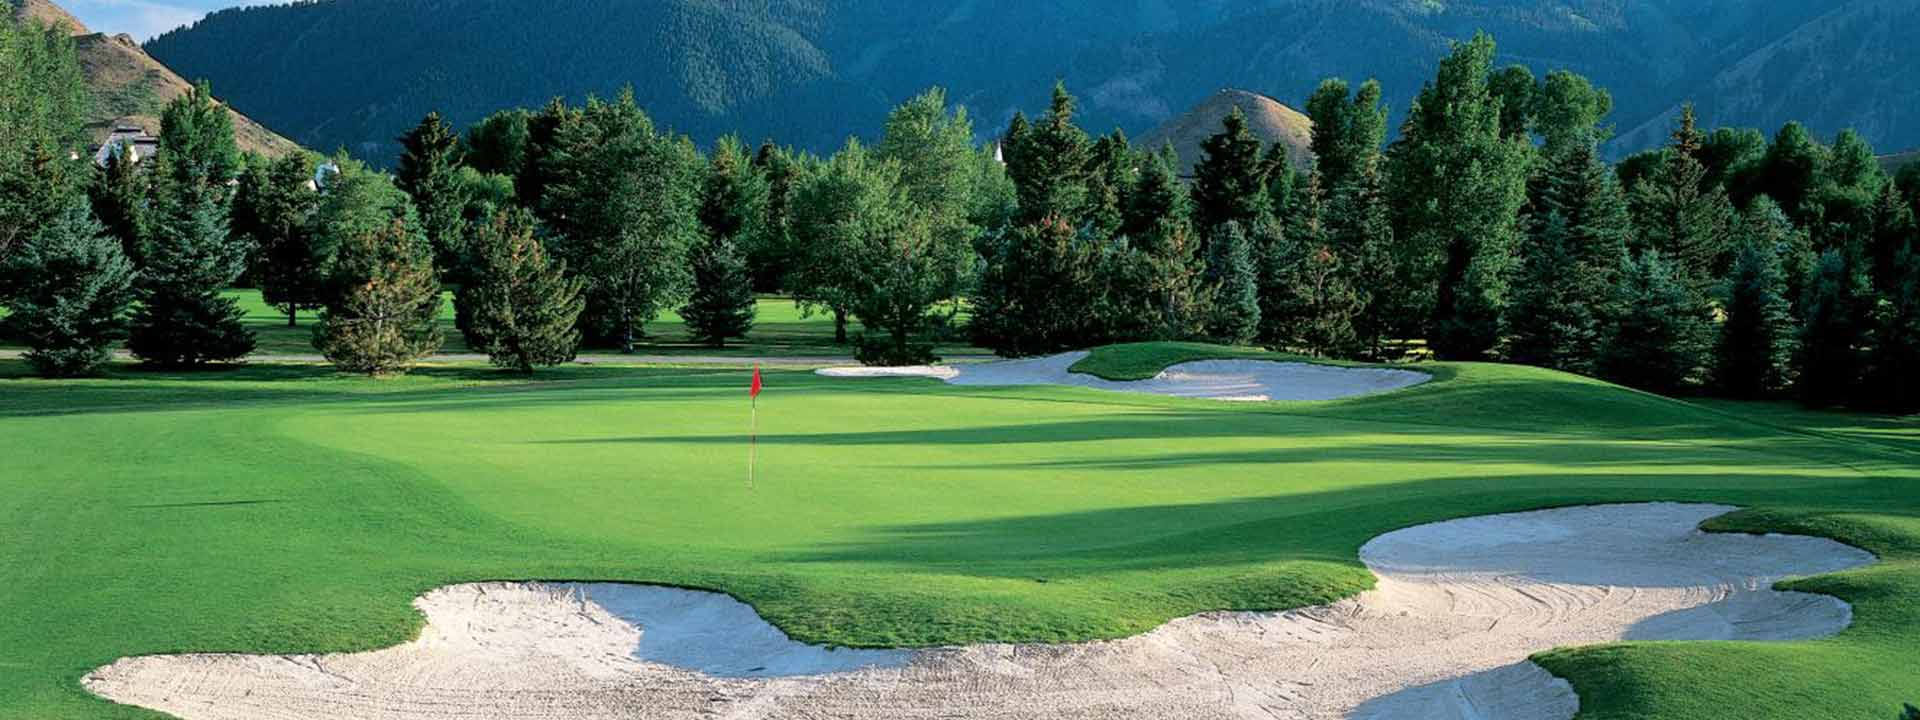 A view of one of the courses at Sun Valley Resort.